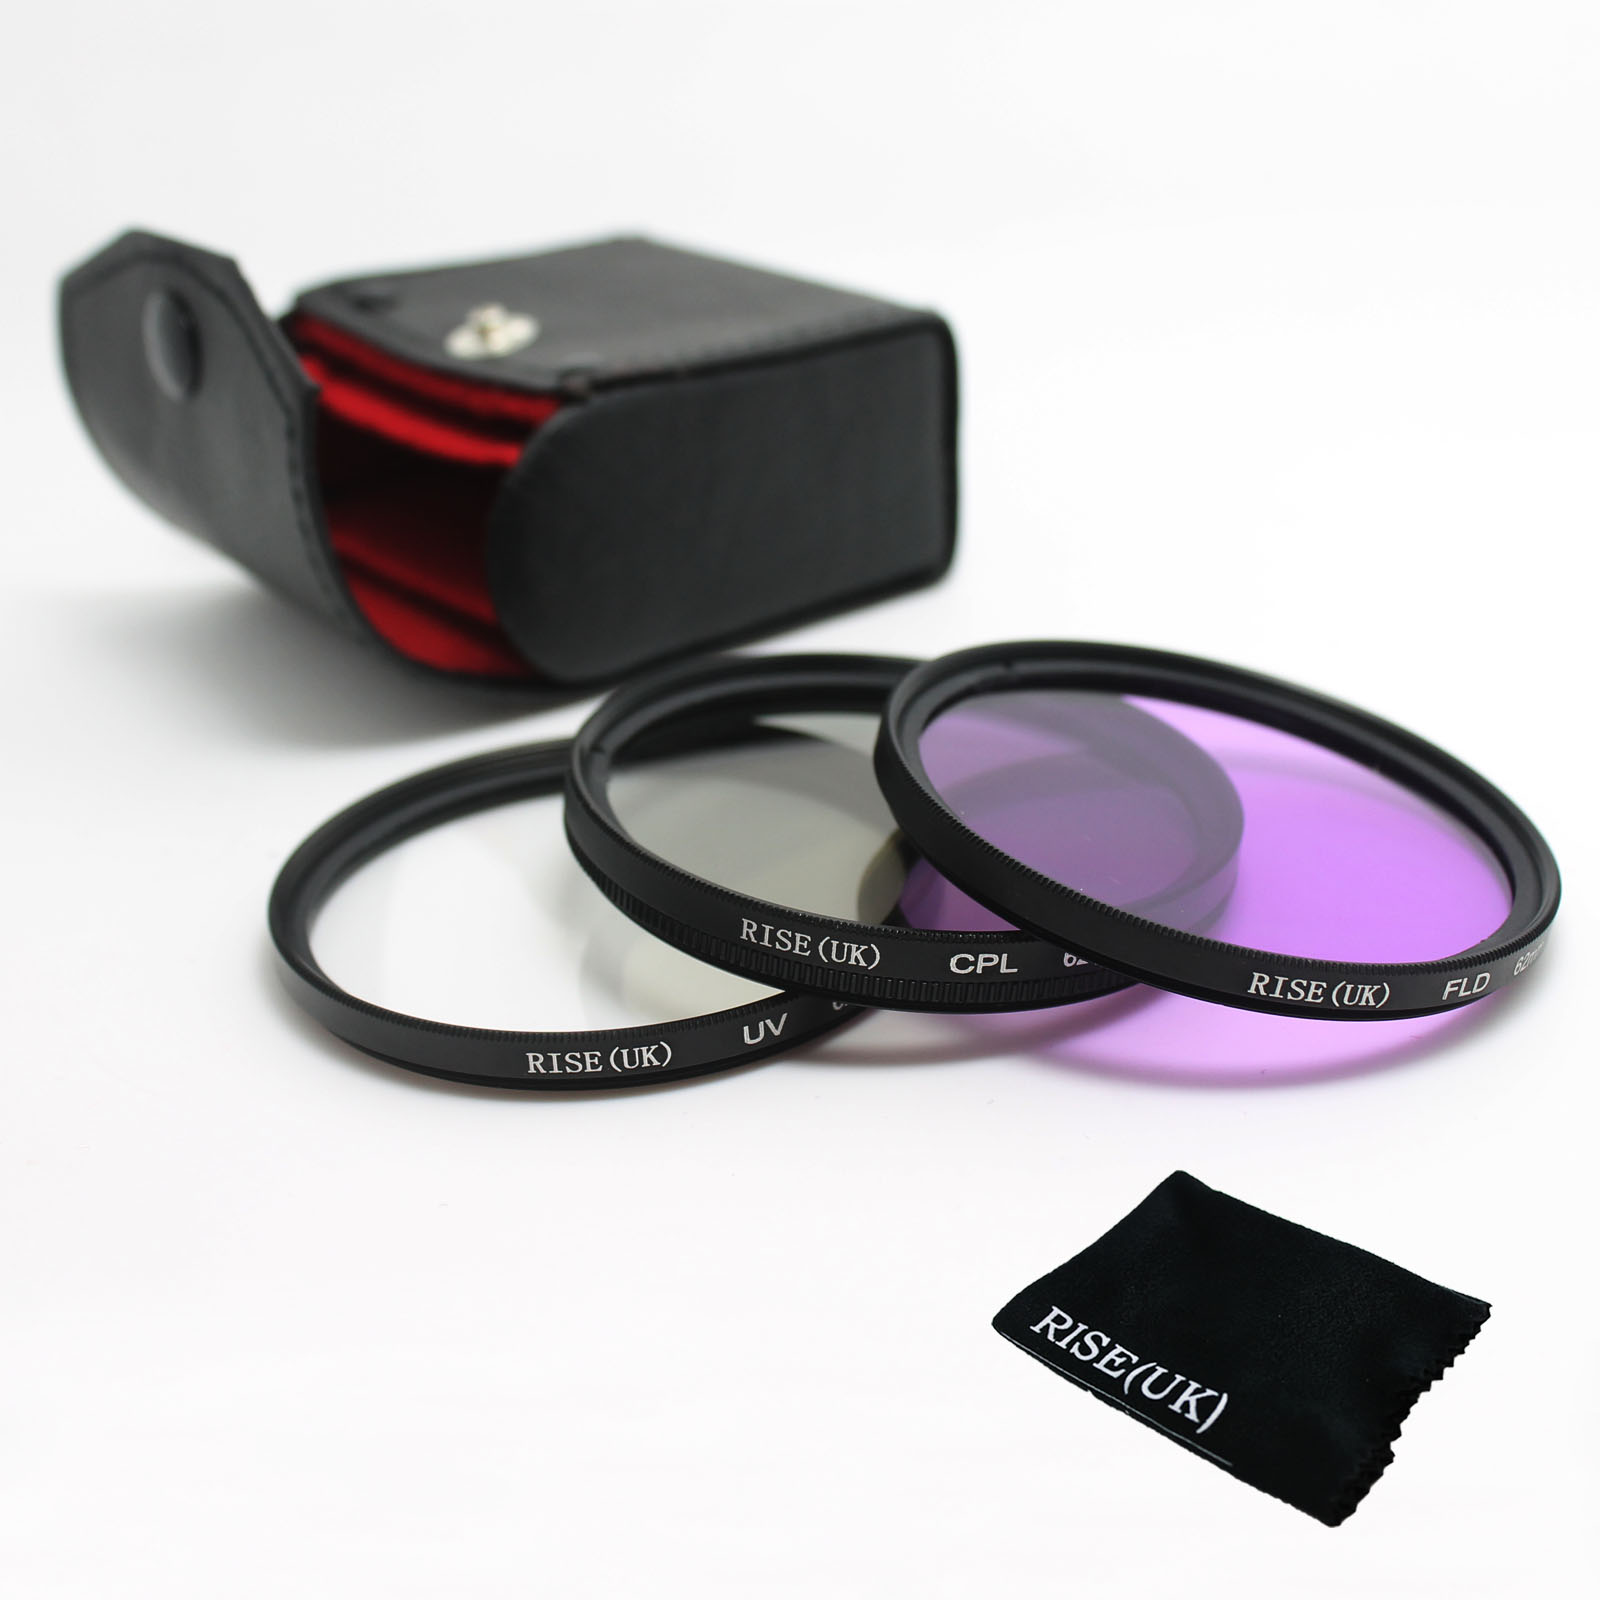 RISE(UK) 49mm 52mm 55 mm 58mm 62mm 67mm 72mm 77mm UV + FLD + CPL Lens Filter Protector for canon nikon pentax sony dslr camera светофильтр polaroid uv cpl fld warming 52mm набор фильтров pl4fil52